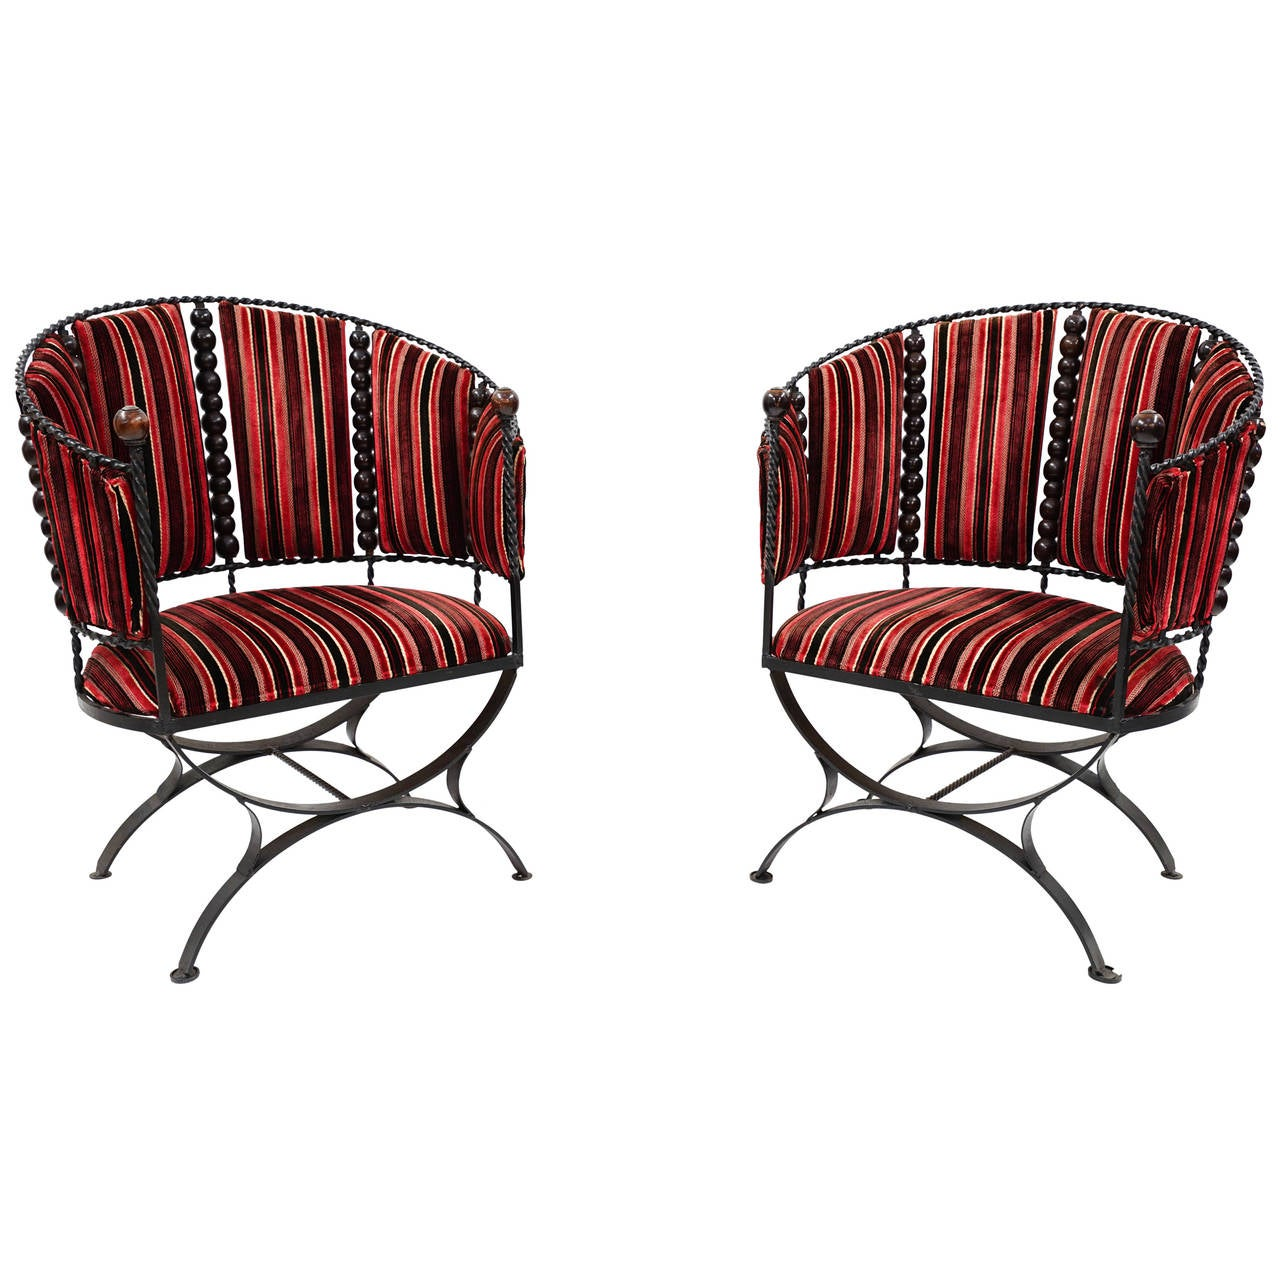 Pair of hans wegner lounge chairs at 1stdibs - Amazing Mid Century Modern Wrought Iron Barrel Back Lounge